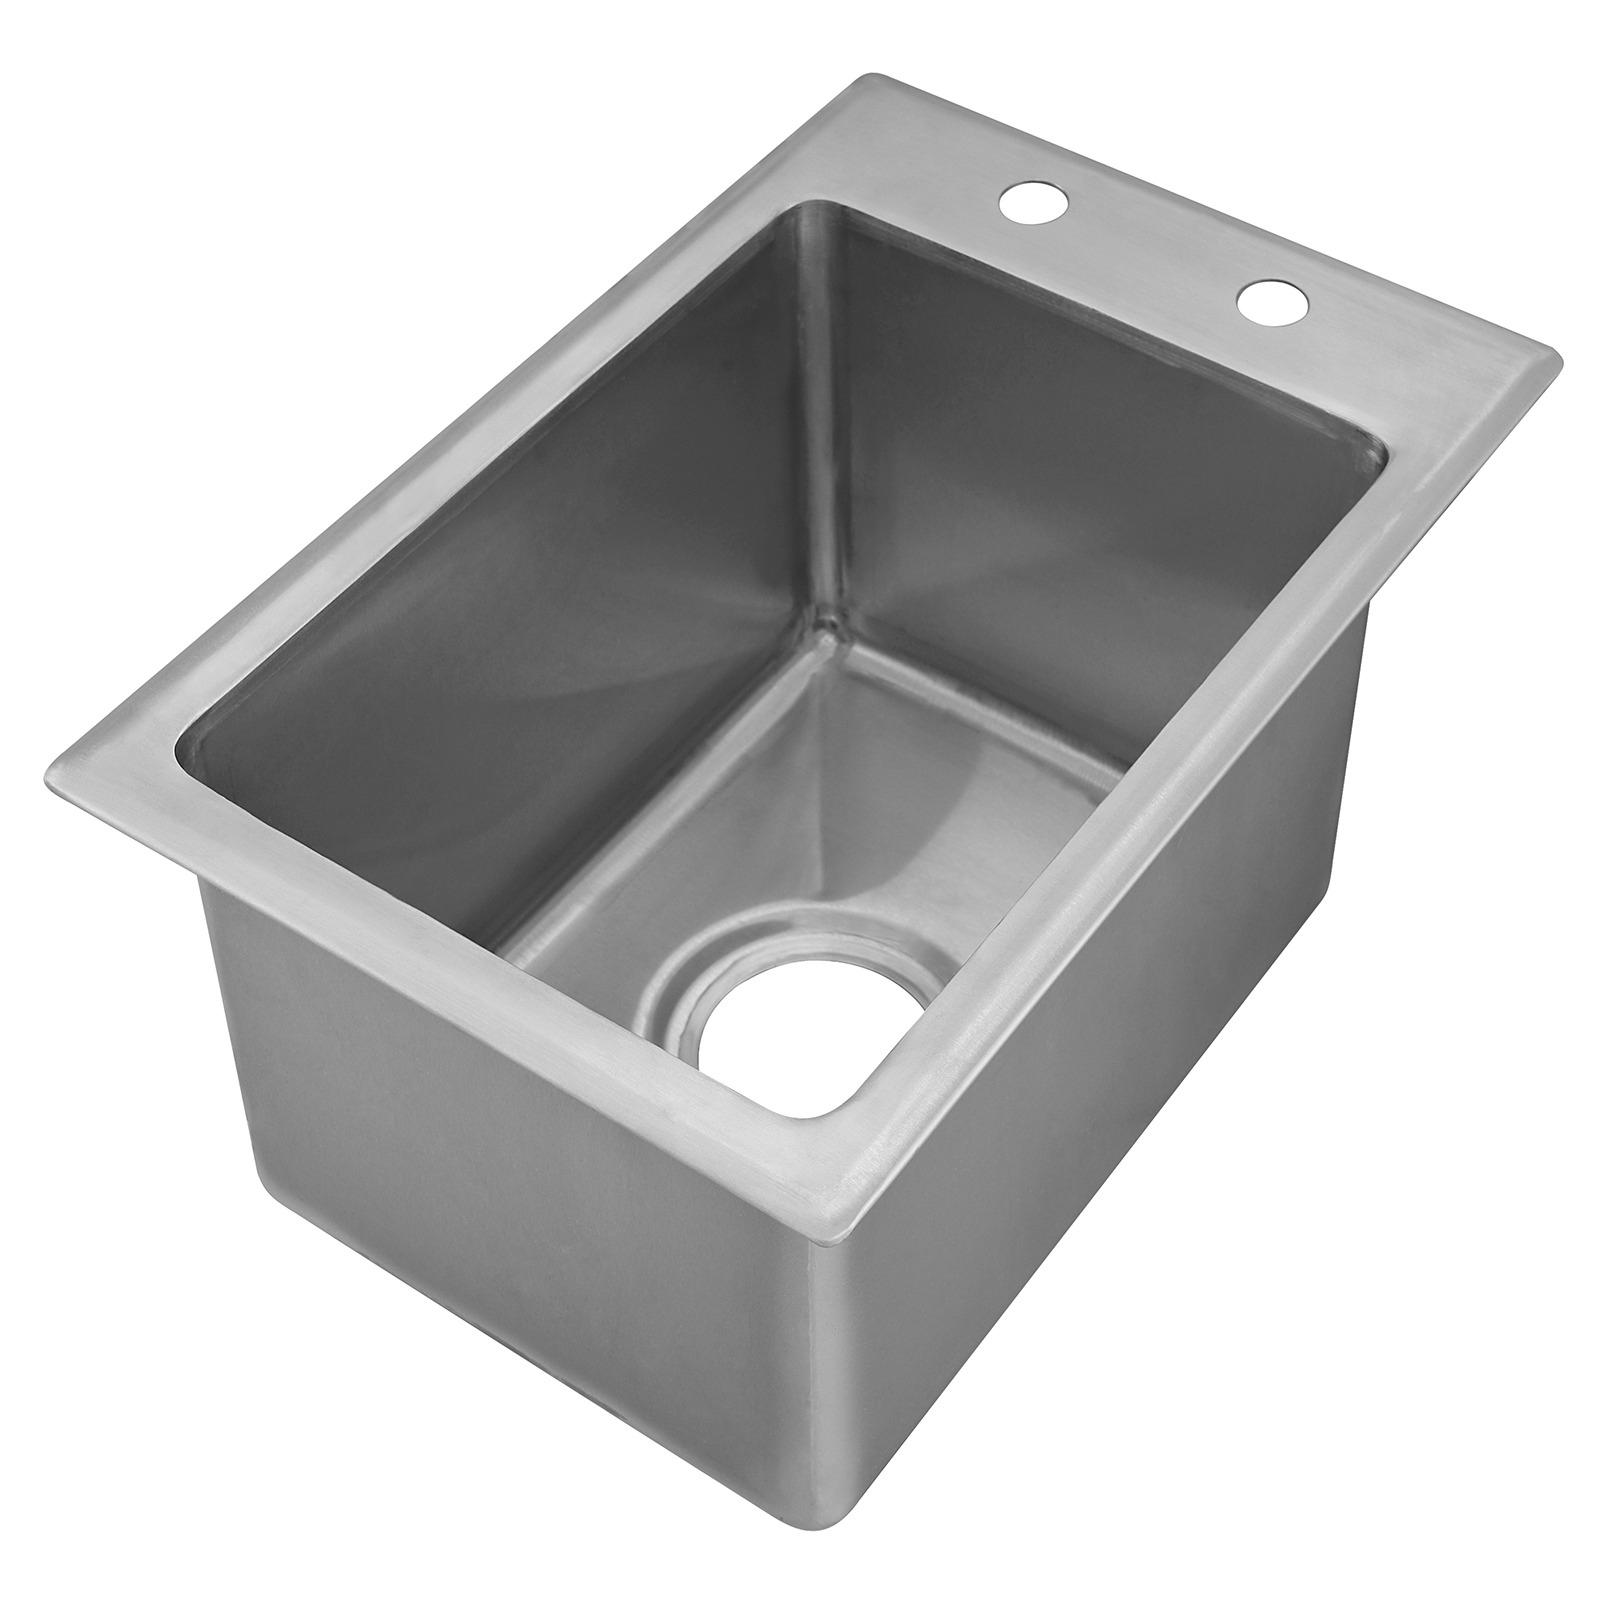 Klinger's Trading DIS-1014 sink, drop-in